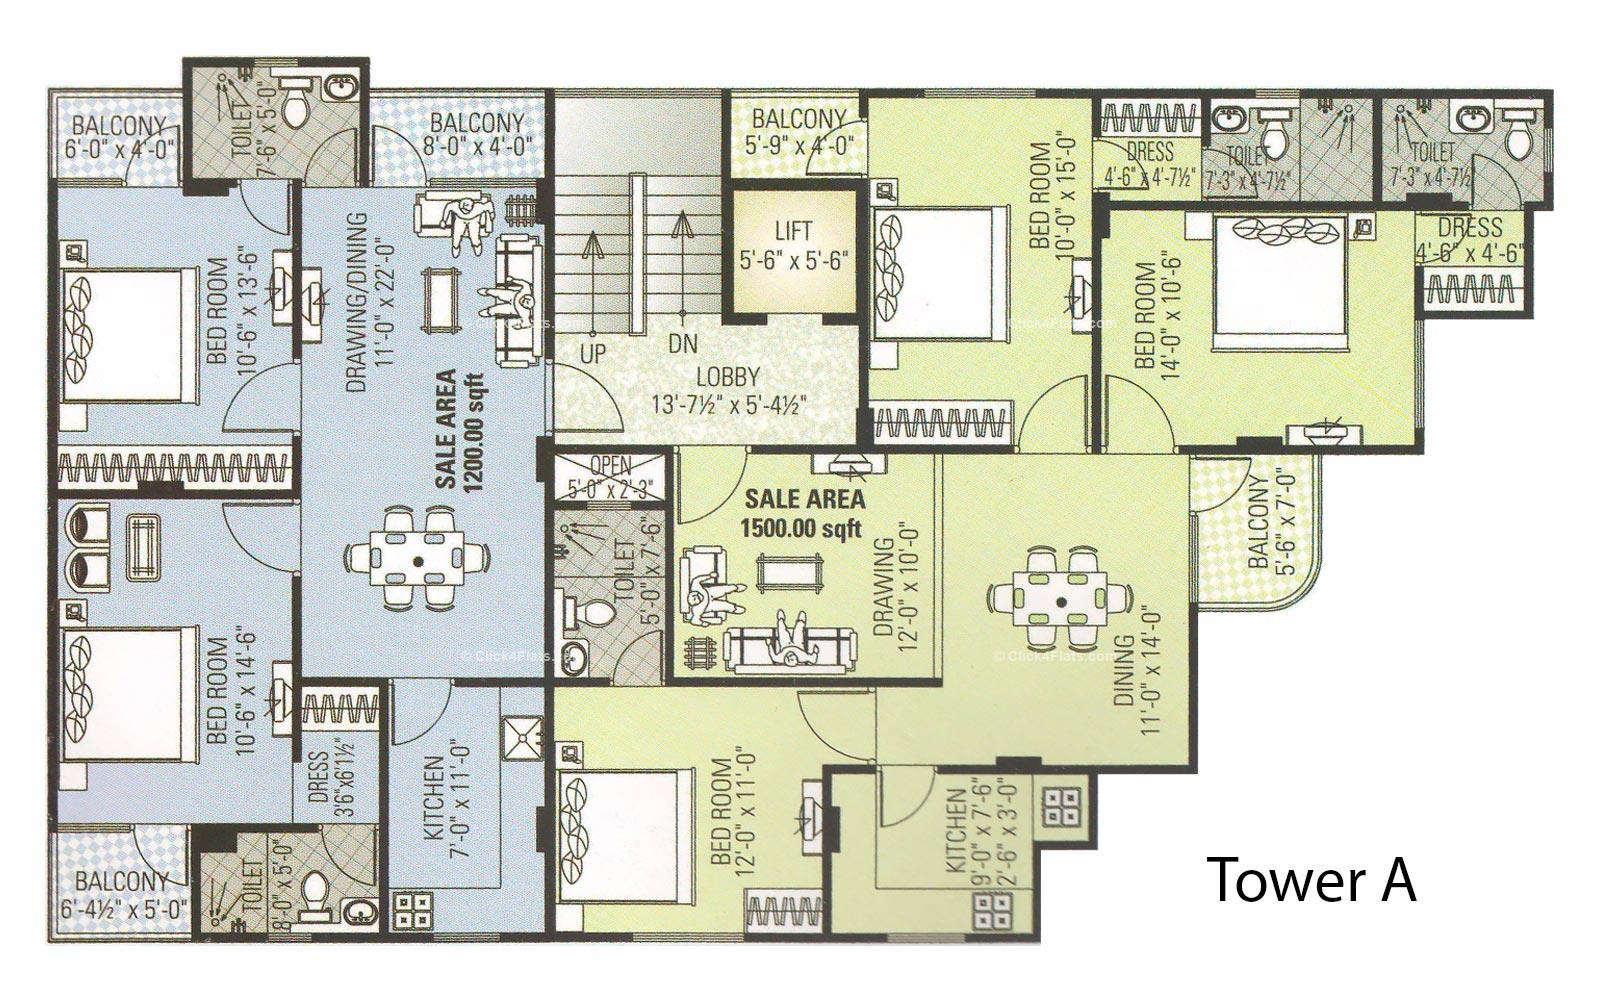 Amour Tower Typical Floor Plan (Tower A)